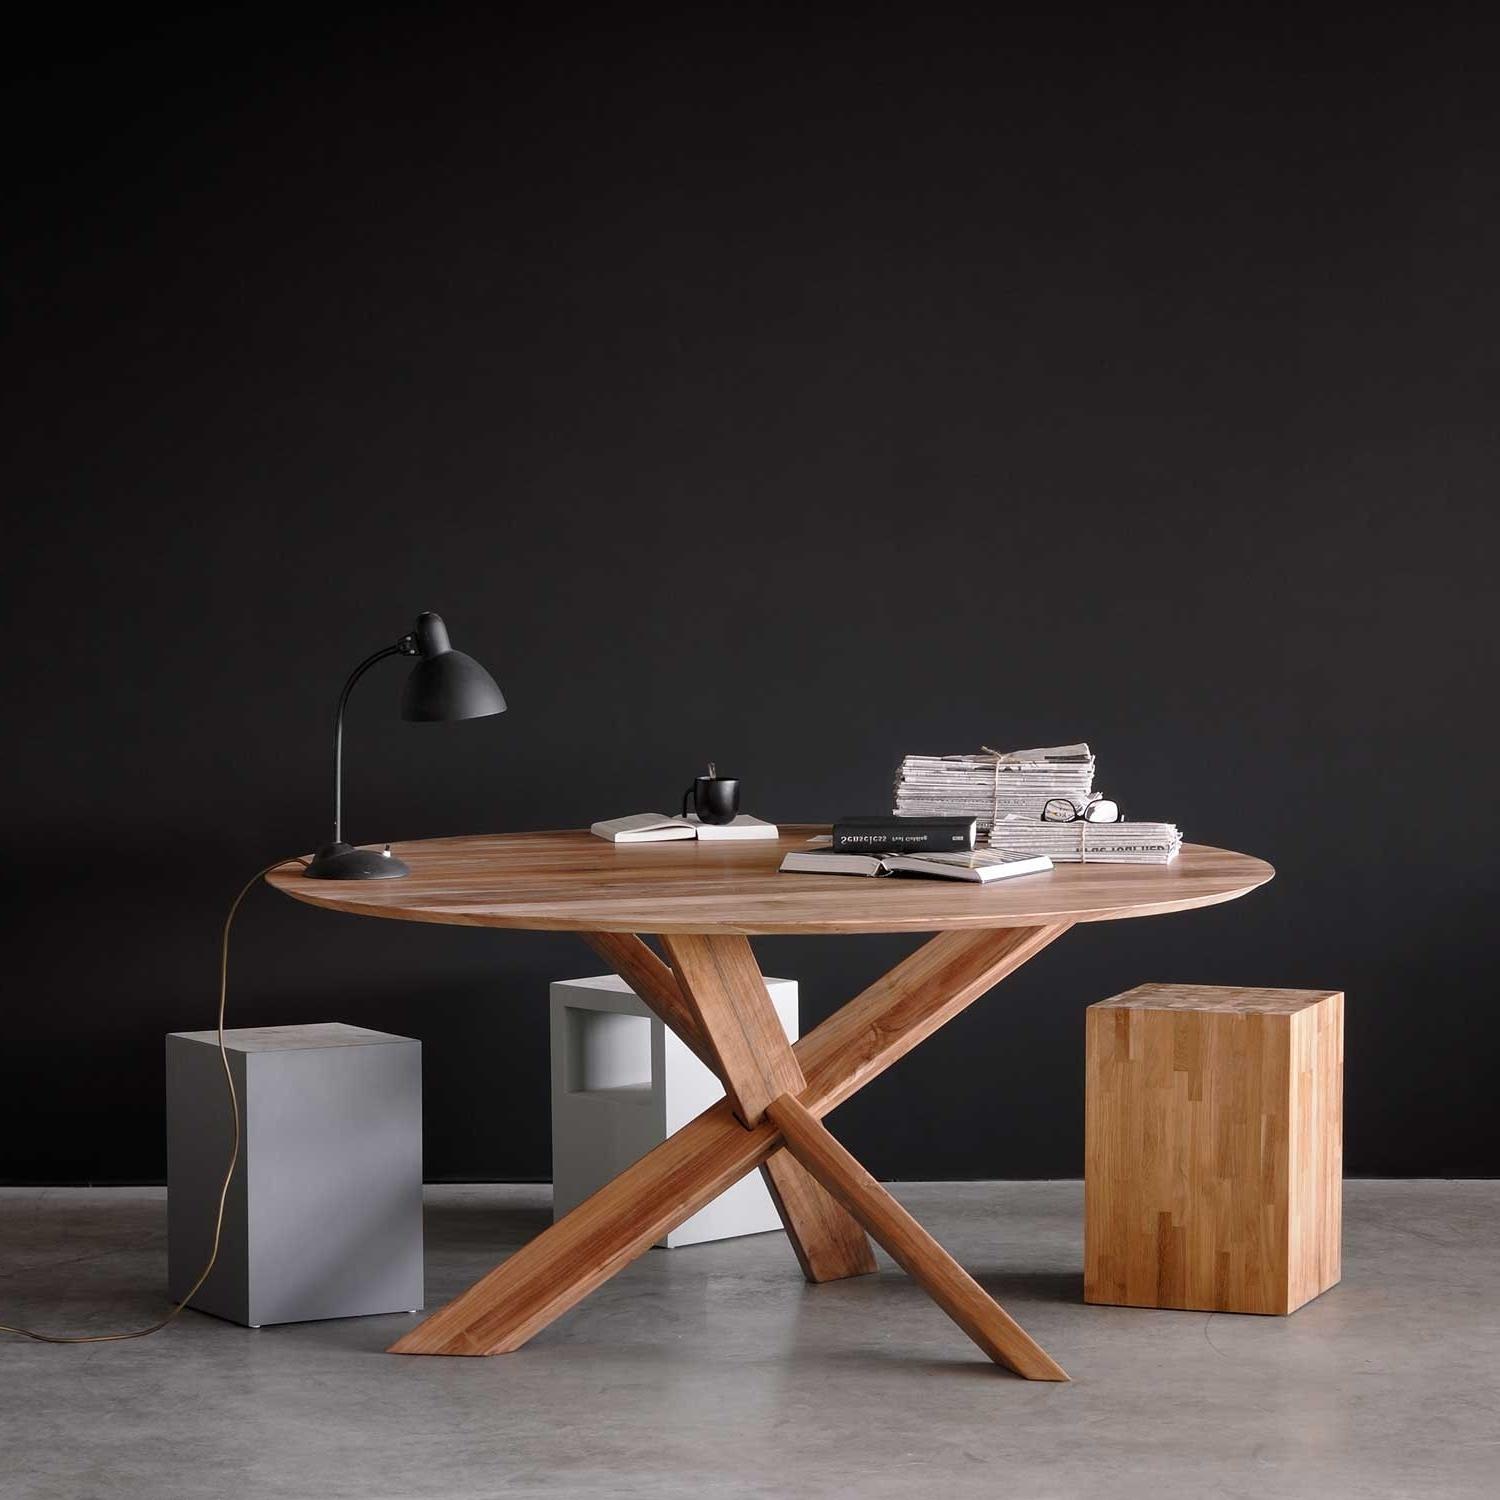 Circular Dining Tables For Well Known Teak Circle Dining Tableethnicraft (View 5 of 25)